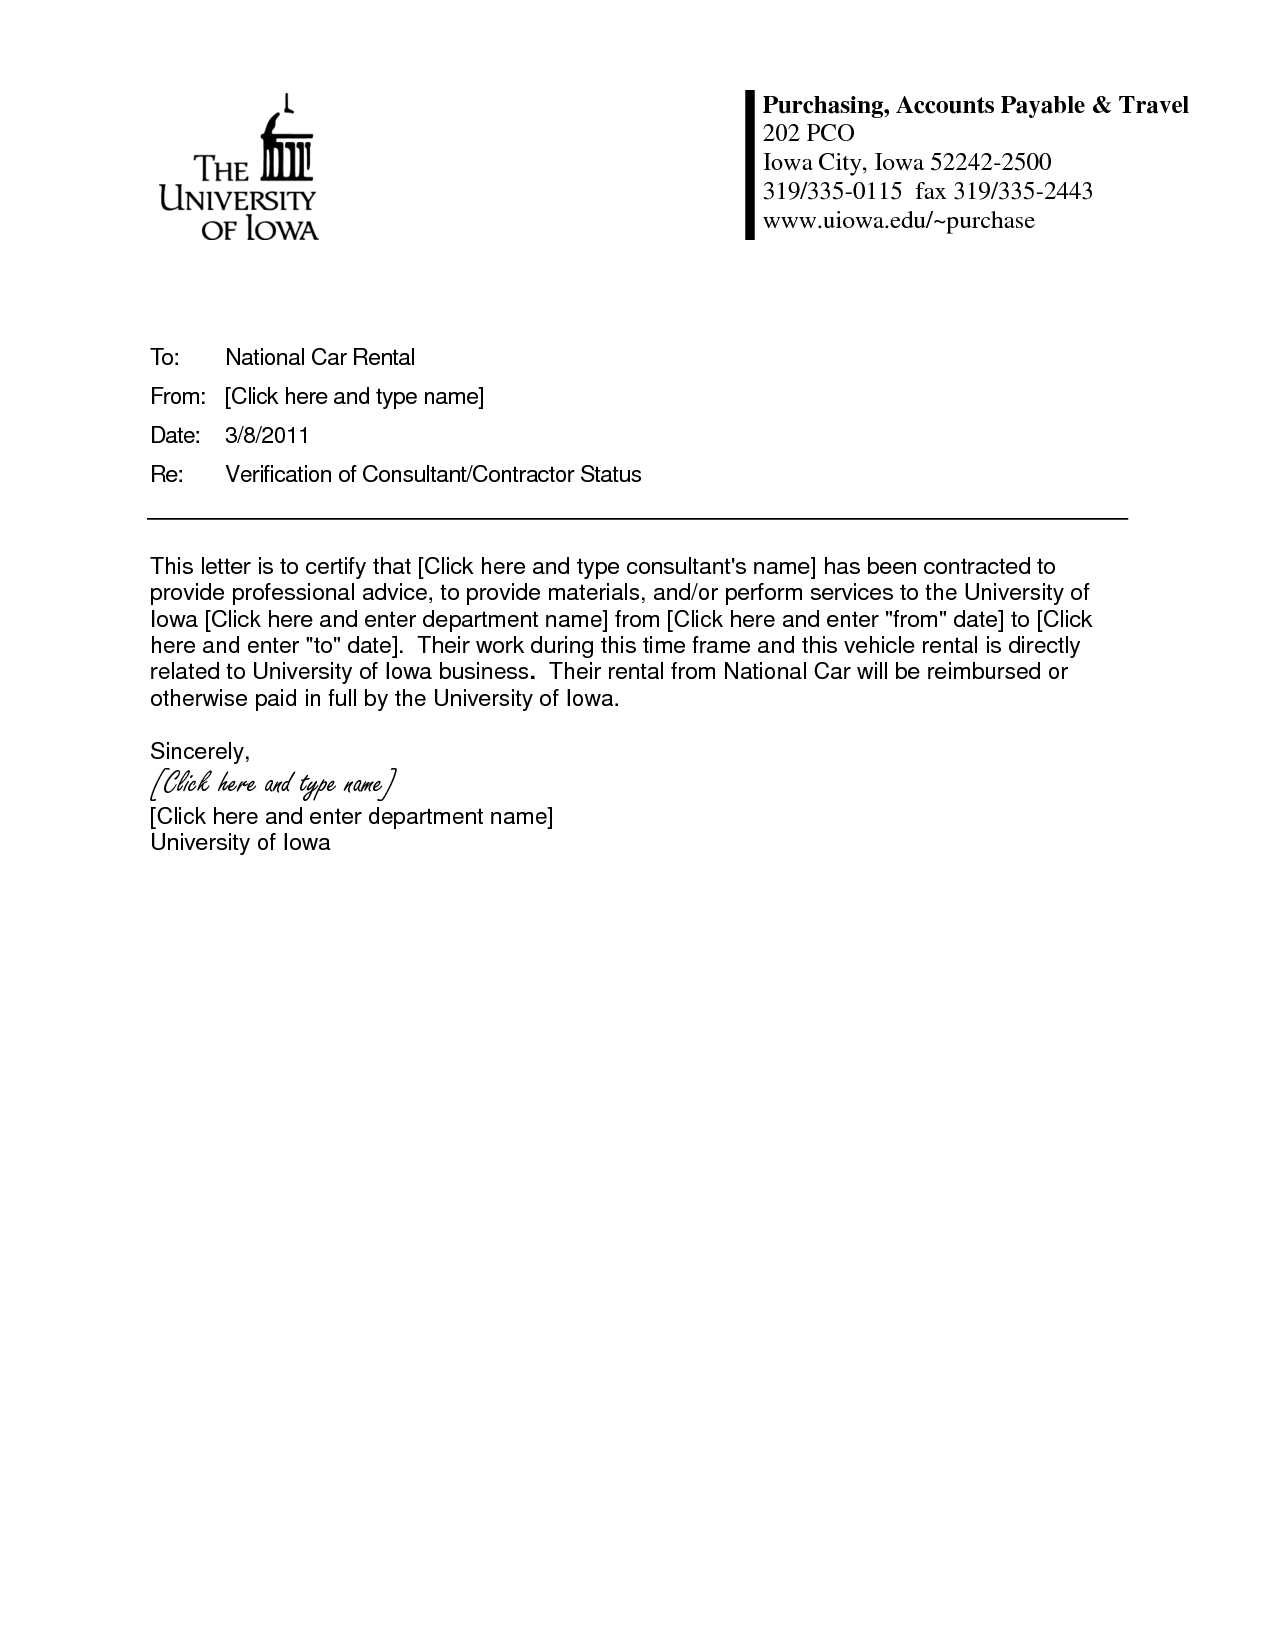 proof of rent letter template   Boat.jeremyeaton.co